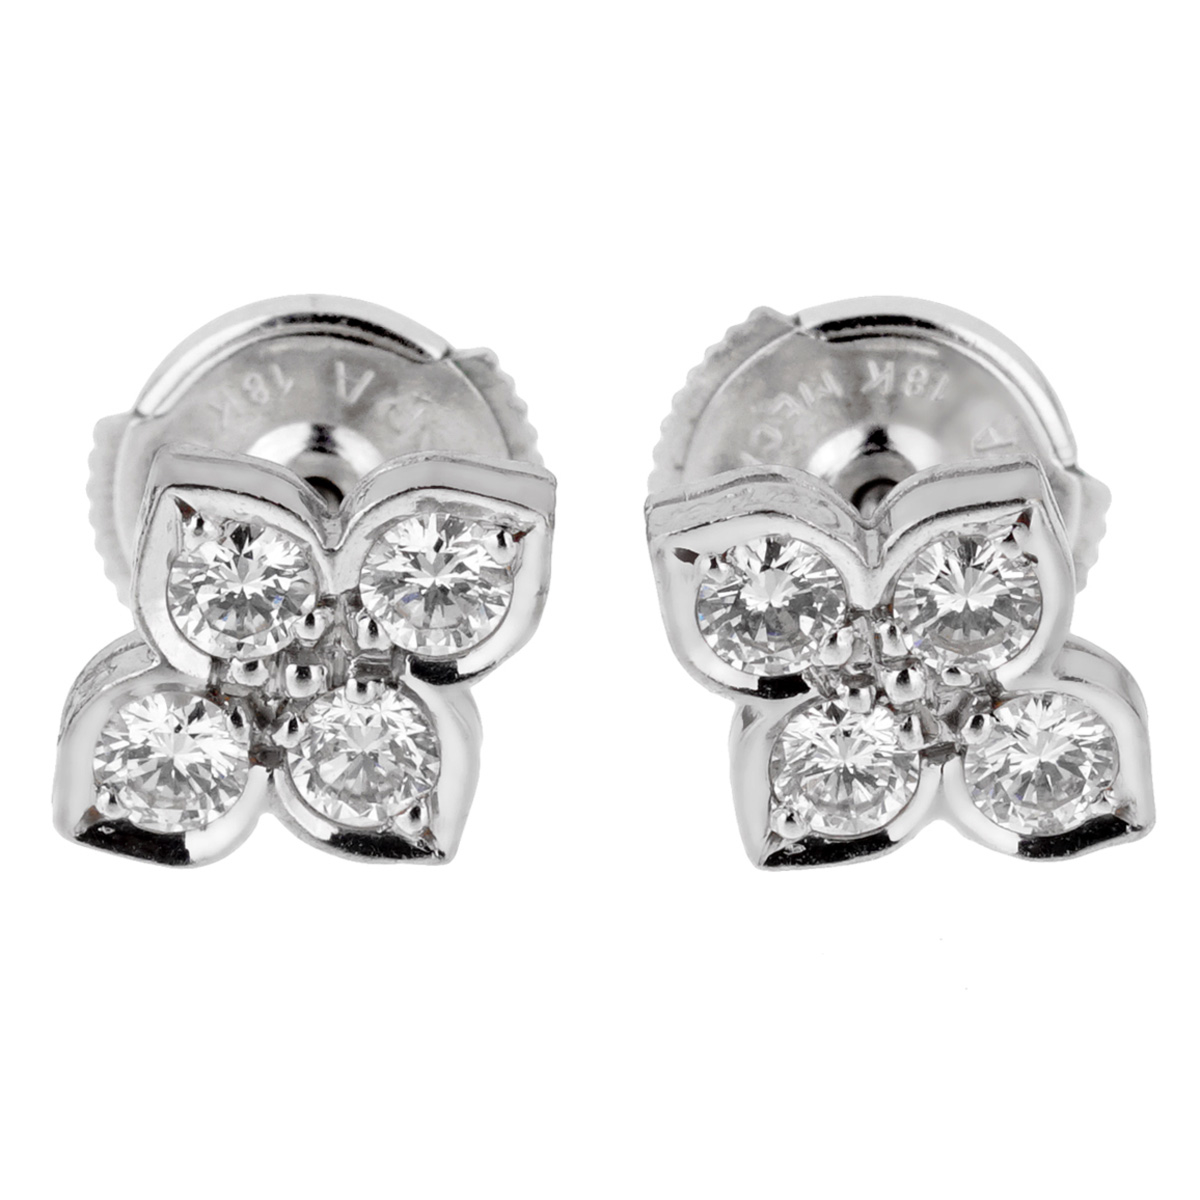 Cartier Flower Diamond White Gold Stud Earrings - Cartier Jewelry